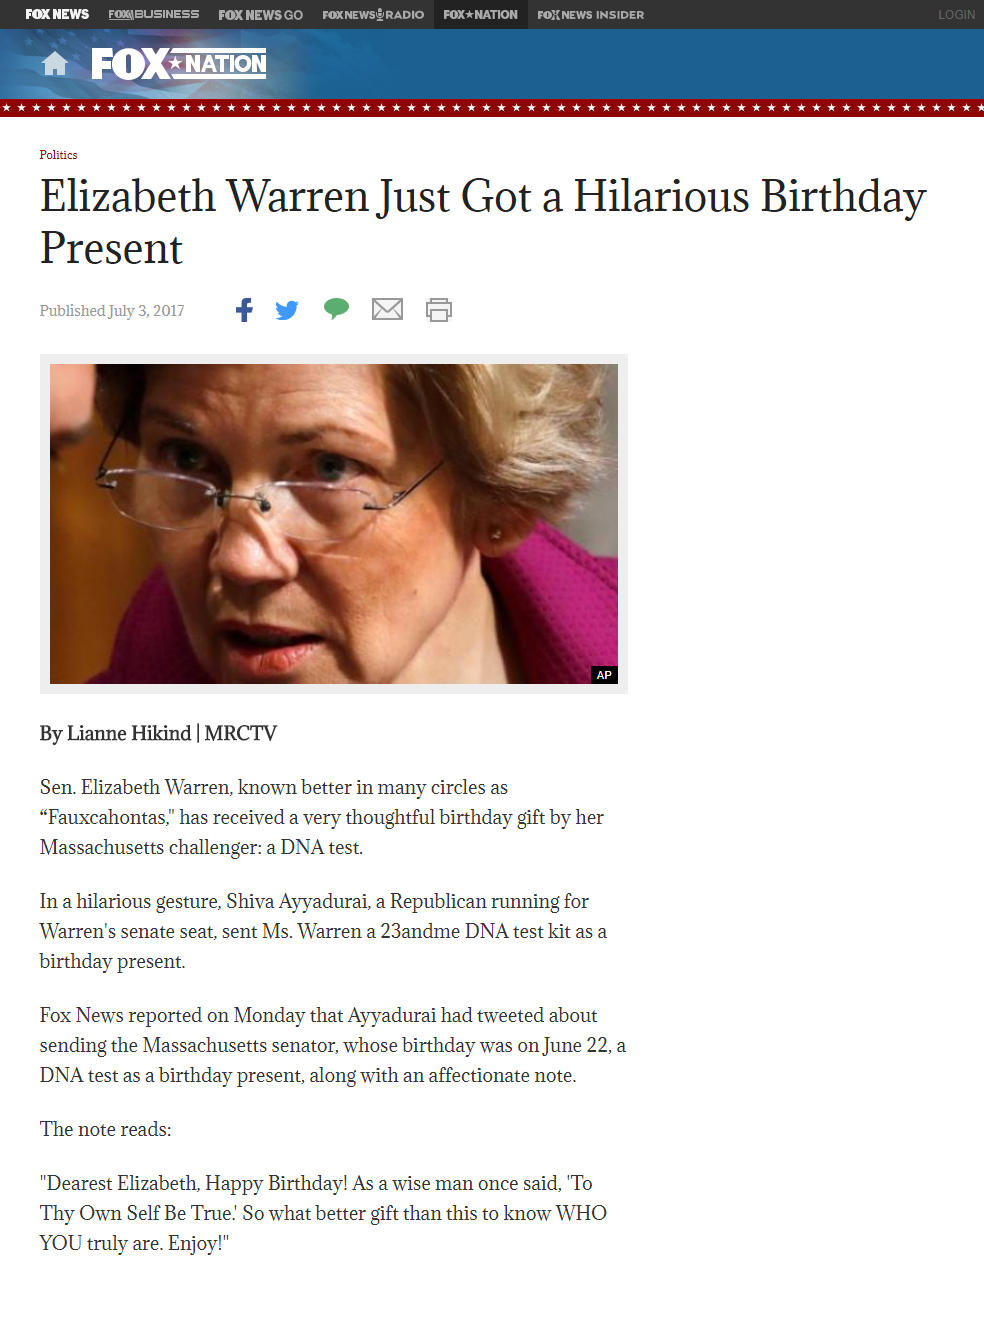 Elizabeth Warren Just Got A Hilarious Birthday Present